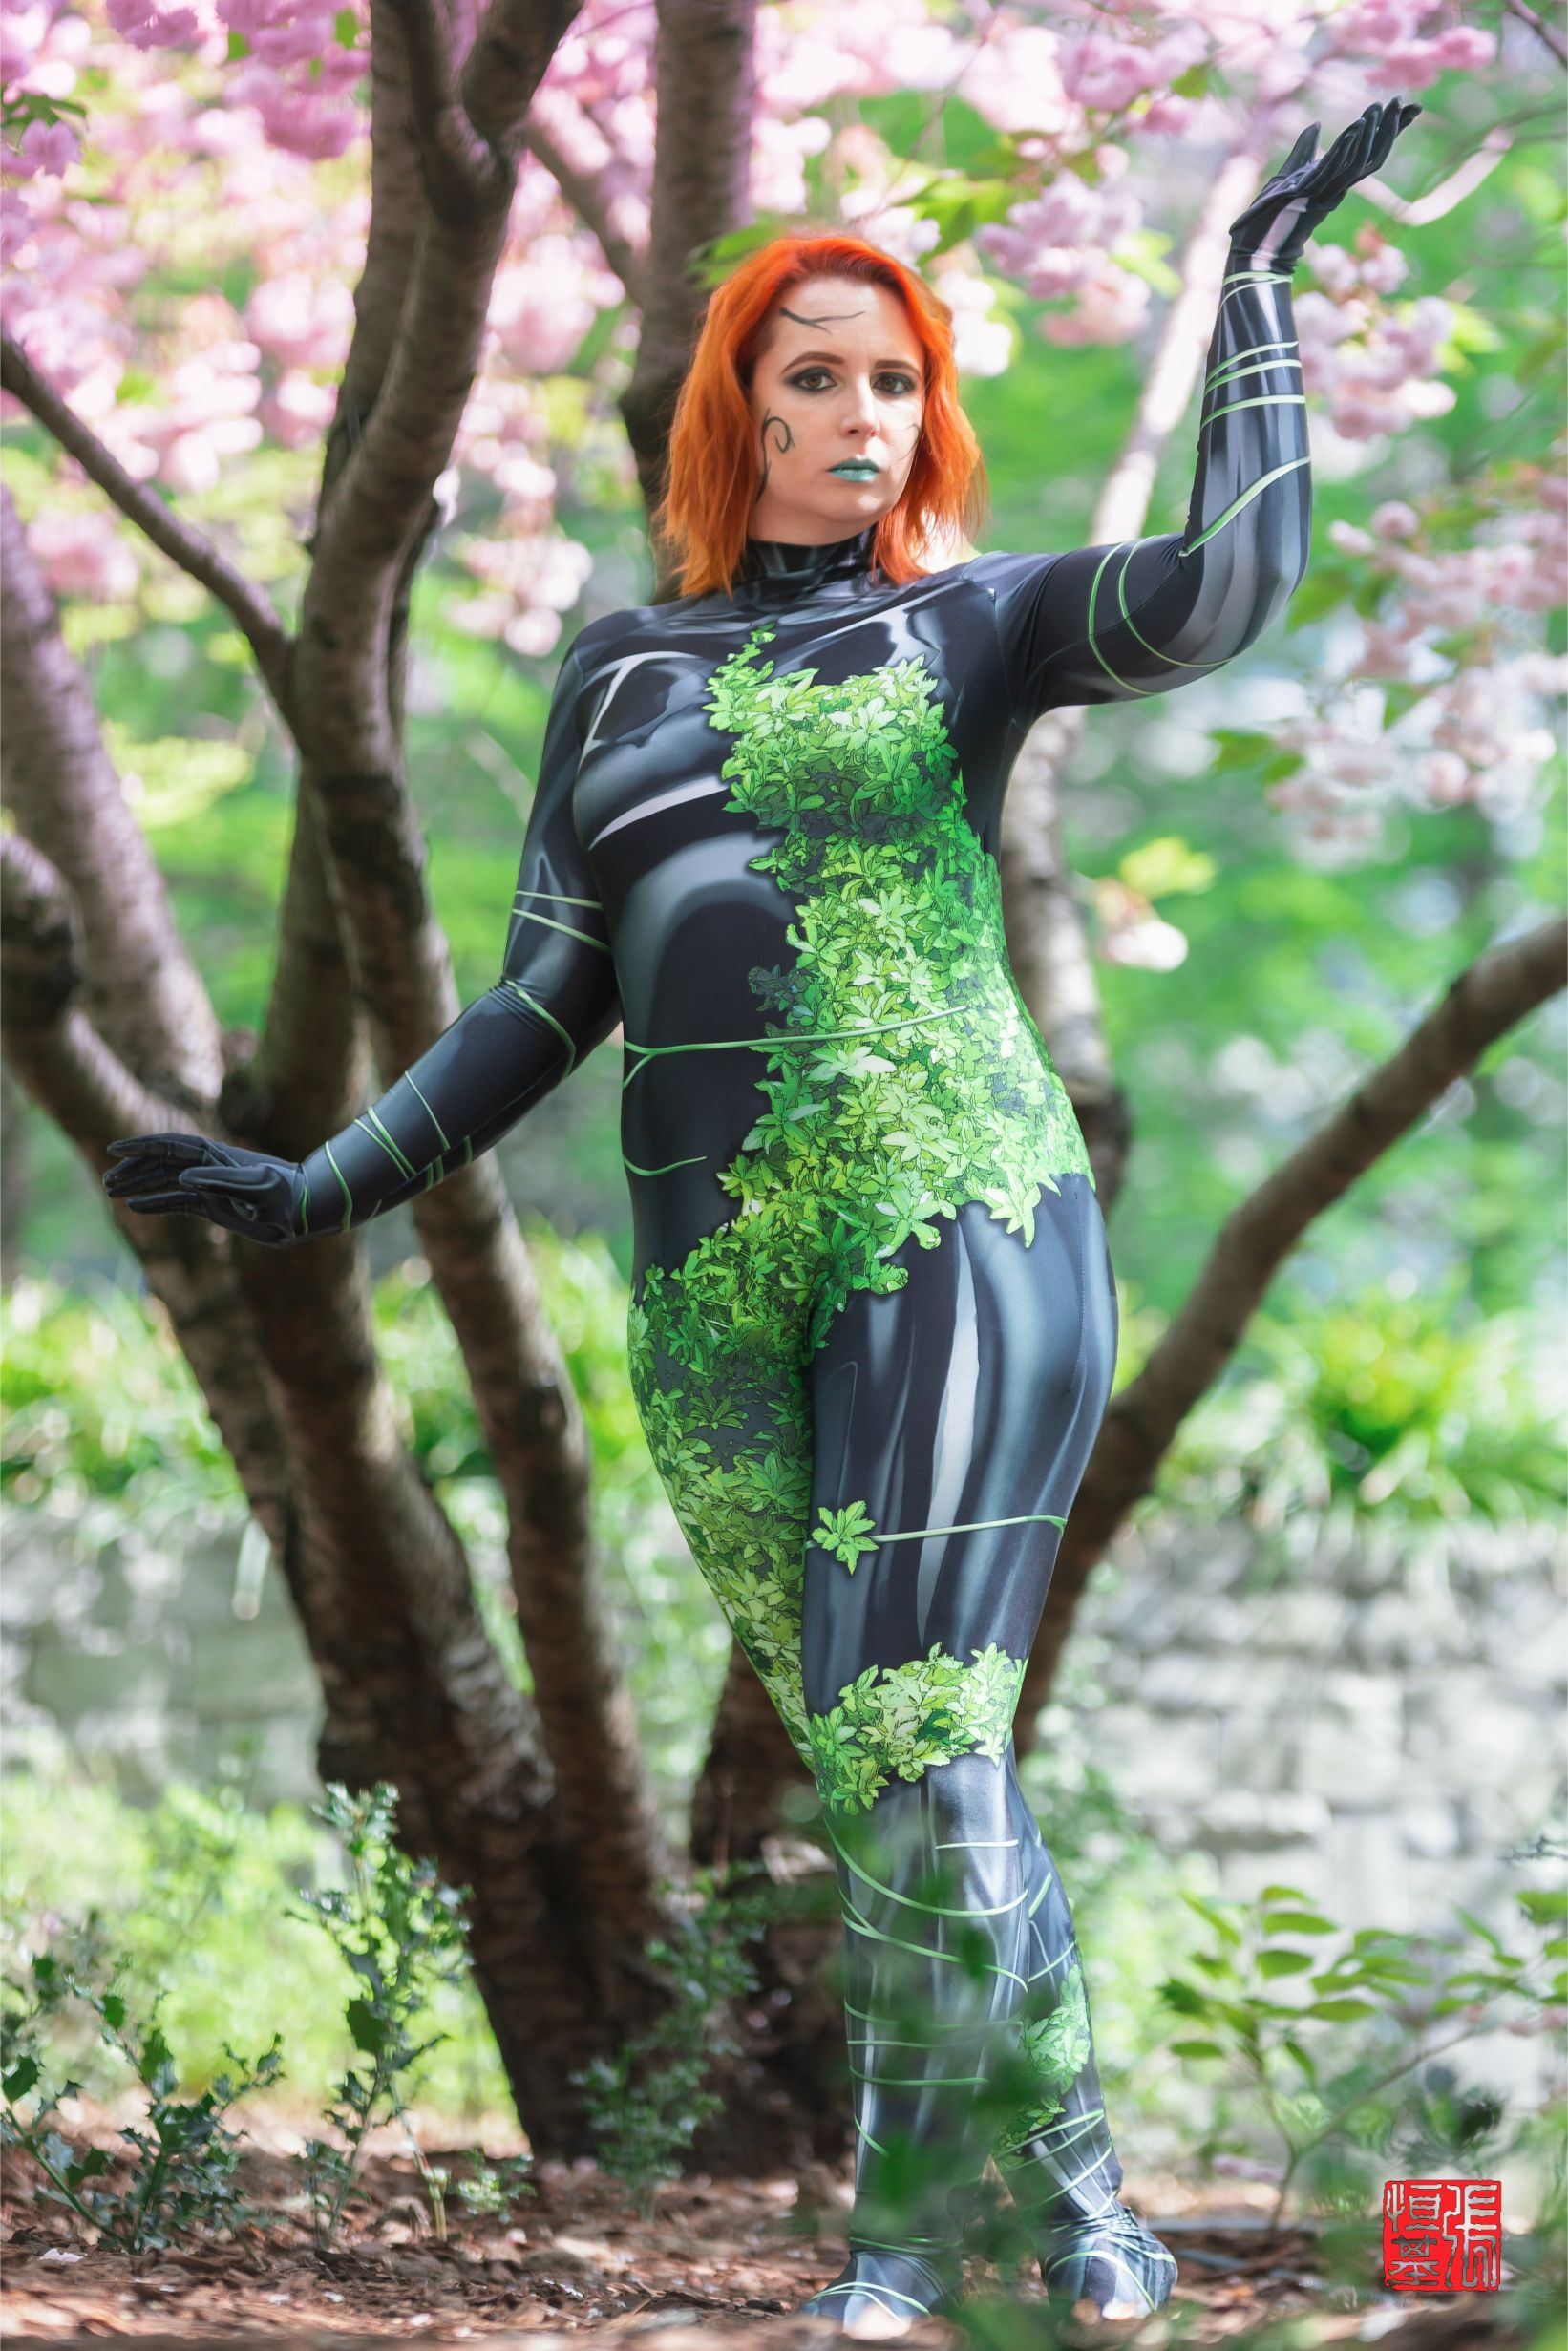 Cherry Blossom Poison Ivy by La Petite Spider